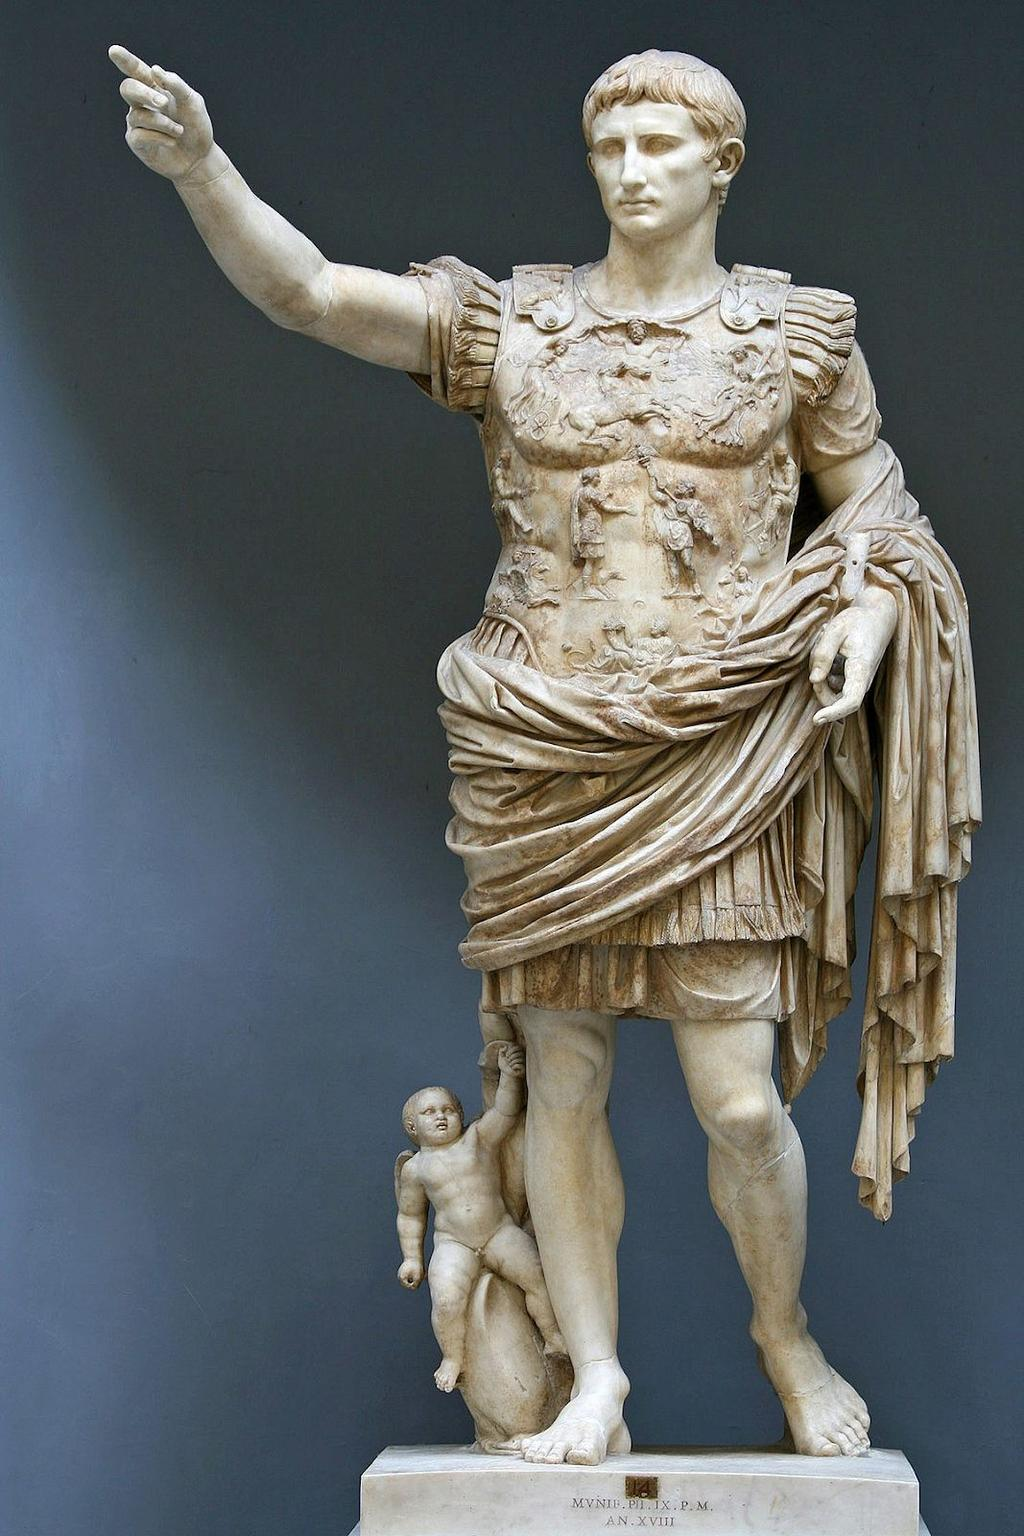 The Roman Empire Octavia was given the title Augustus Exalted One and declared him